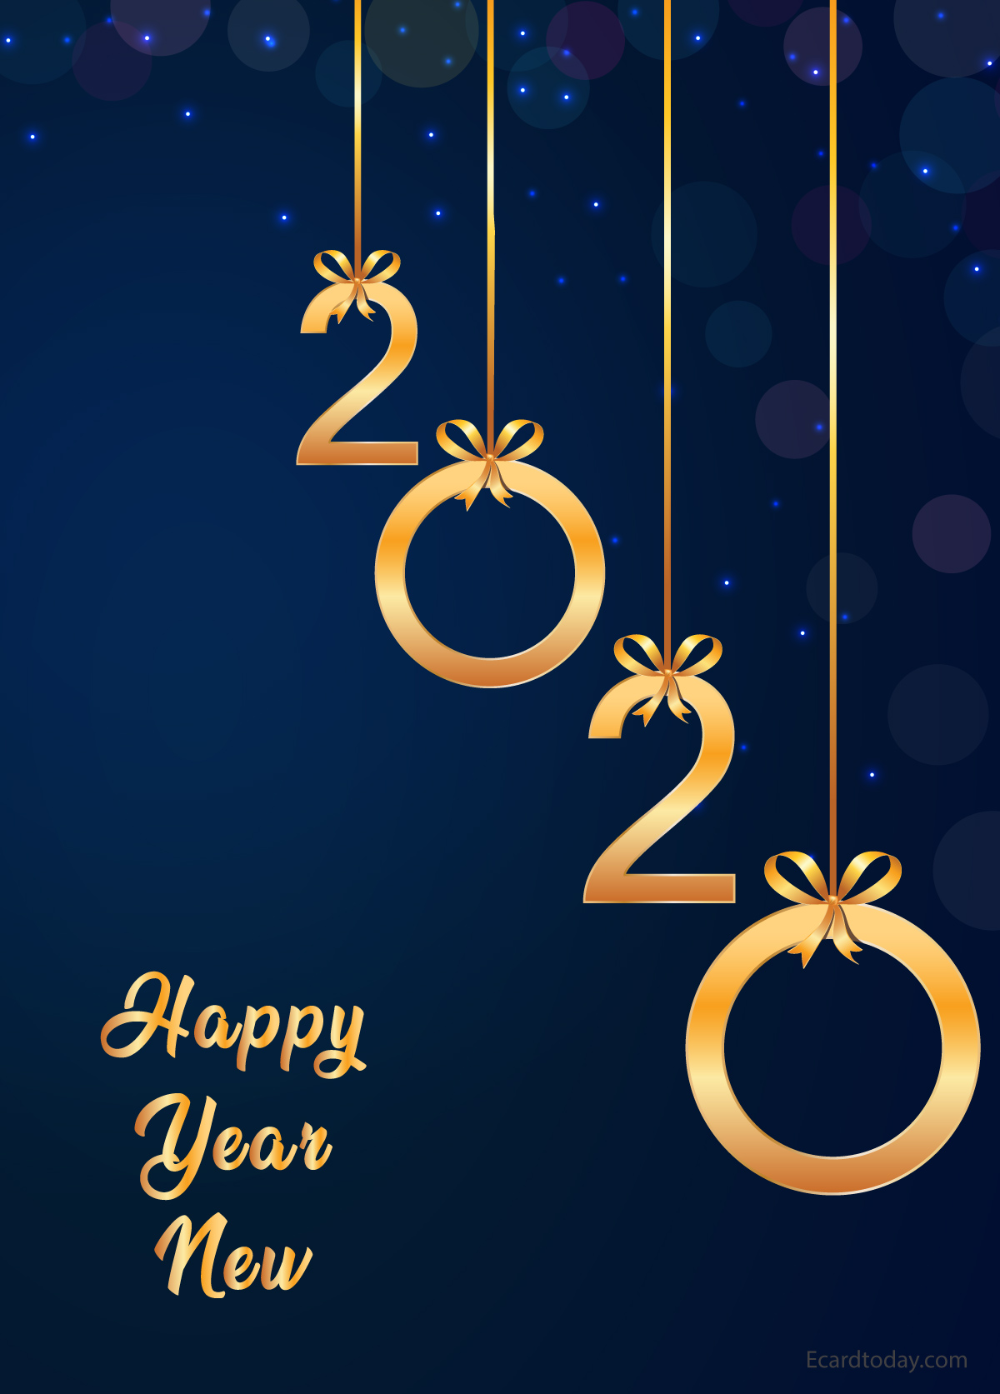 Best Happy New Year Images 2020 E Card Today Happy New Year Wallpaper Happy New Year Images Happy New Year Pictures